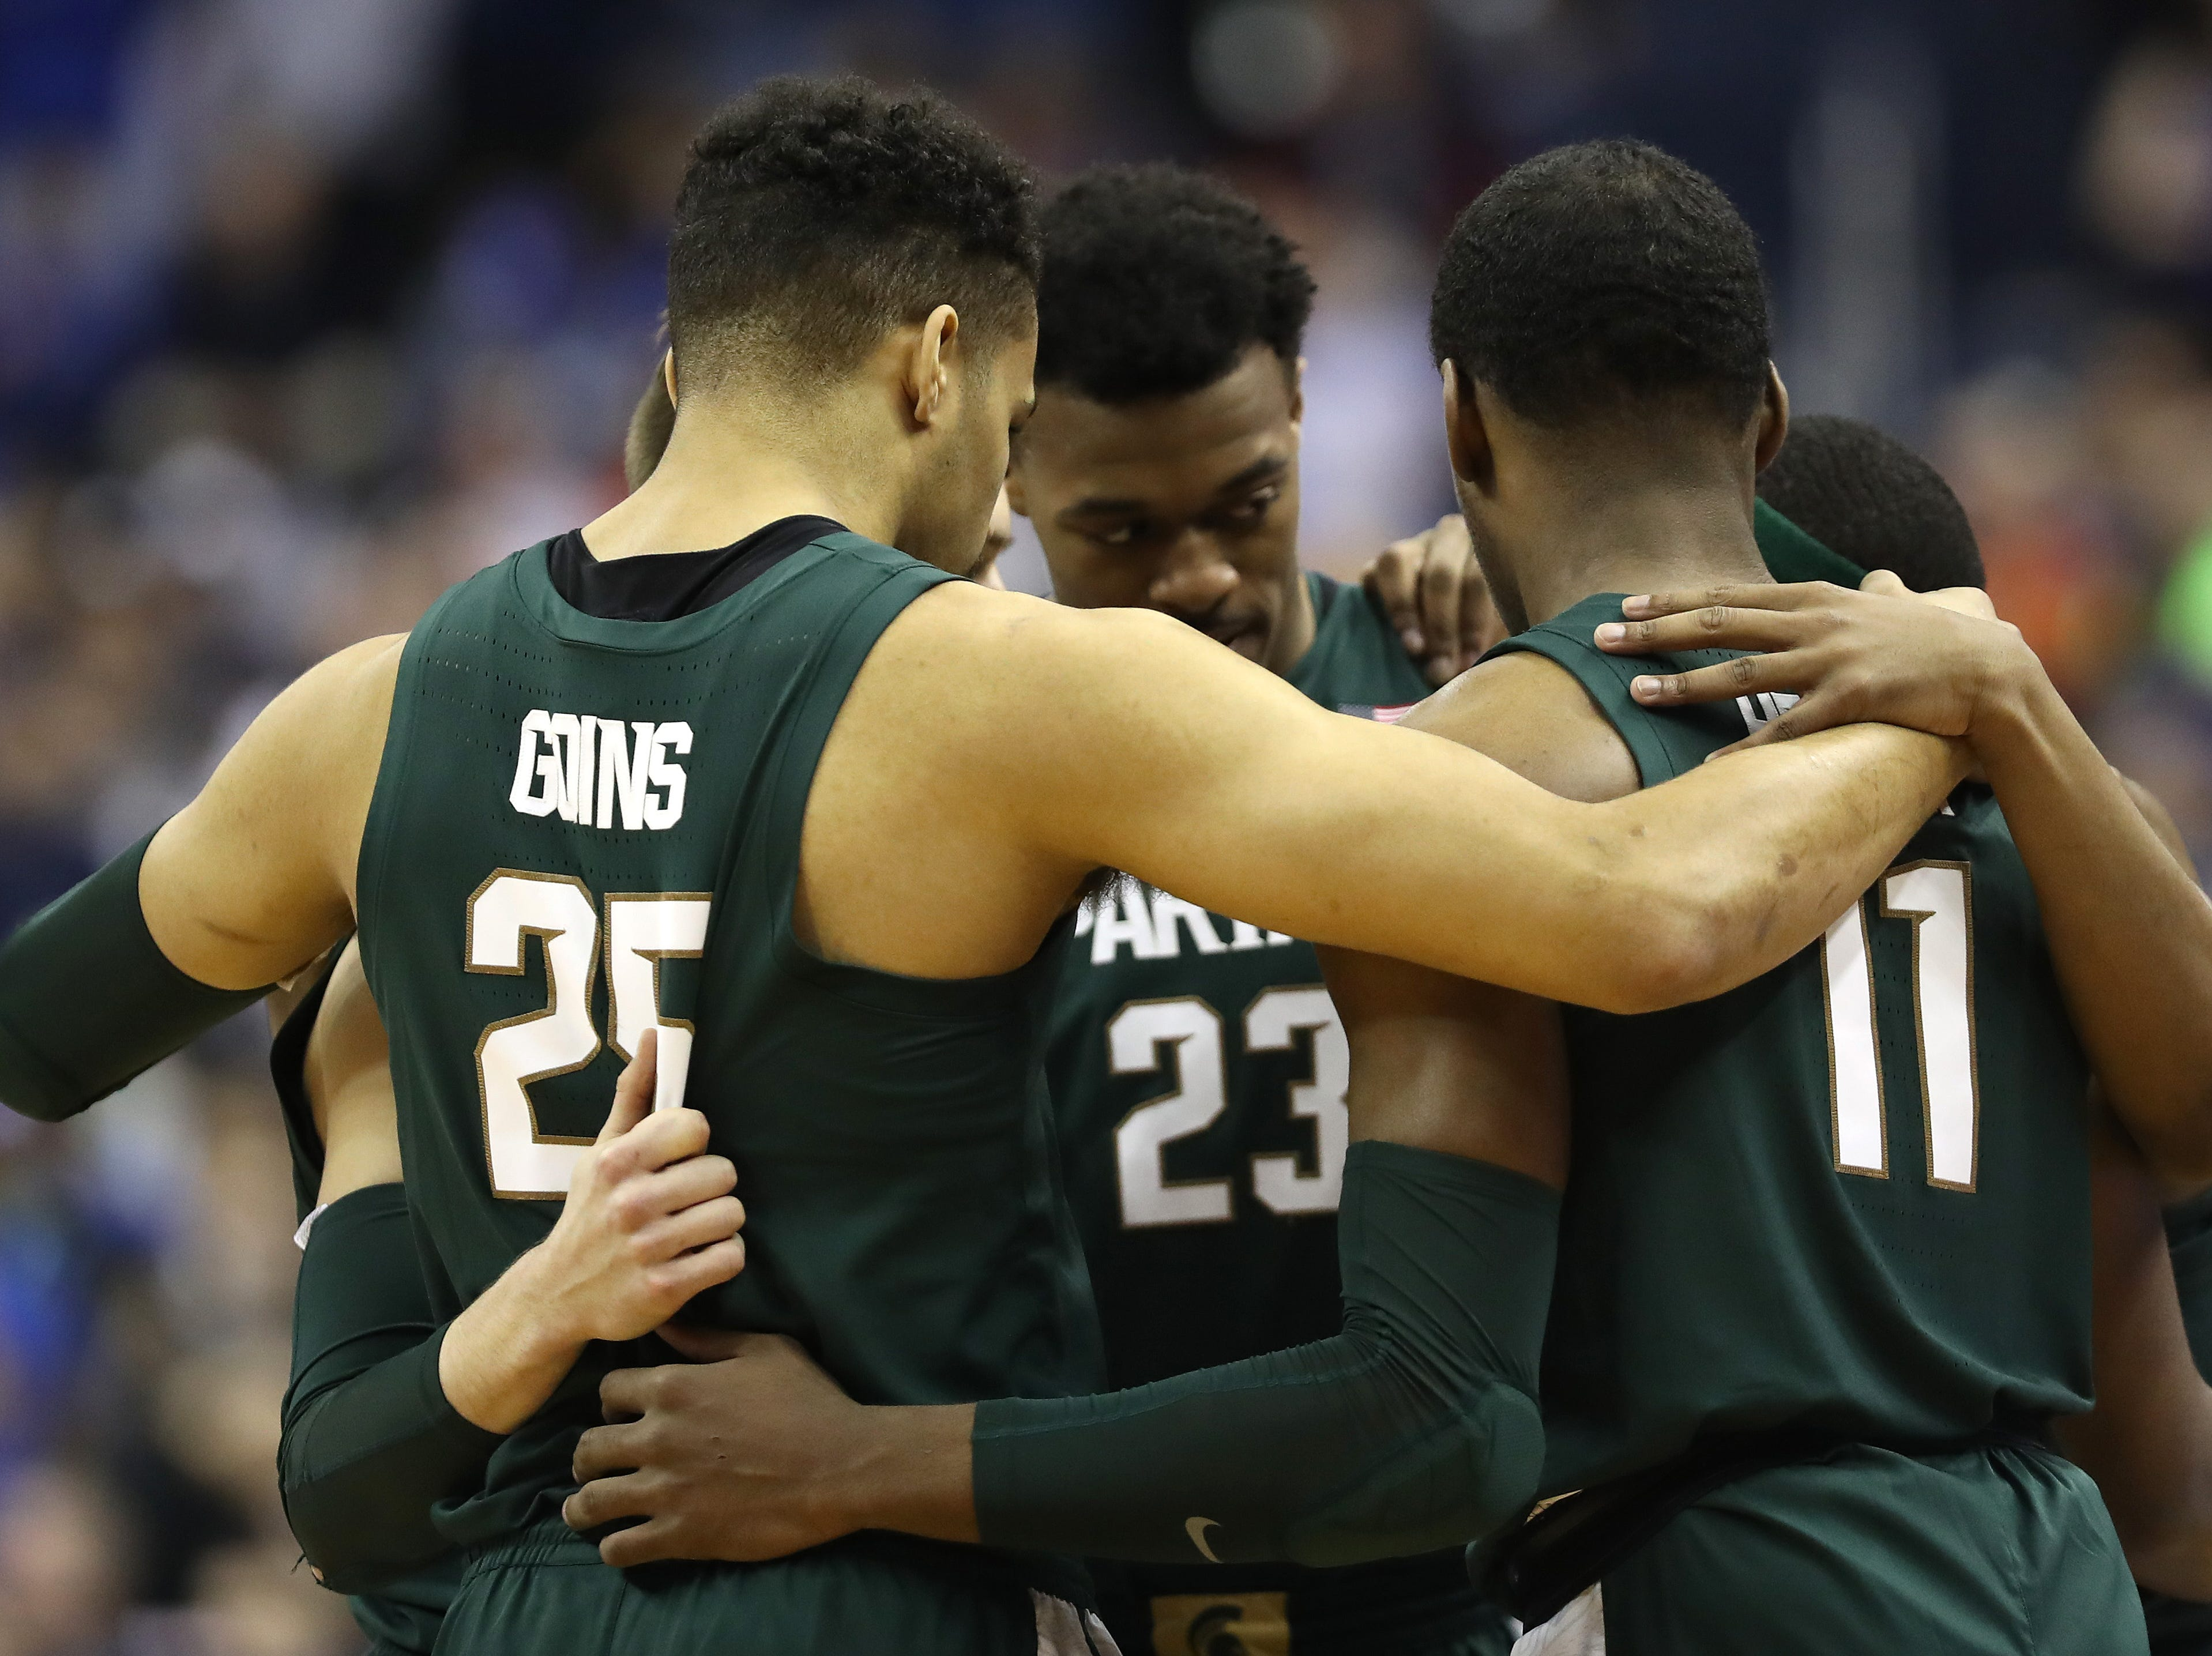 Kenny Goins #25, Xavier Tillman #23 and Aaron Henry #11 of the Michigan State Spartans huddle up prior to the East Regional game of the 2019 NCAA Men's Basketball Tournament at Capital One Arena on March 31, 2019 in Washington, DC.